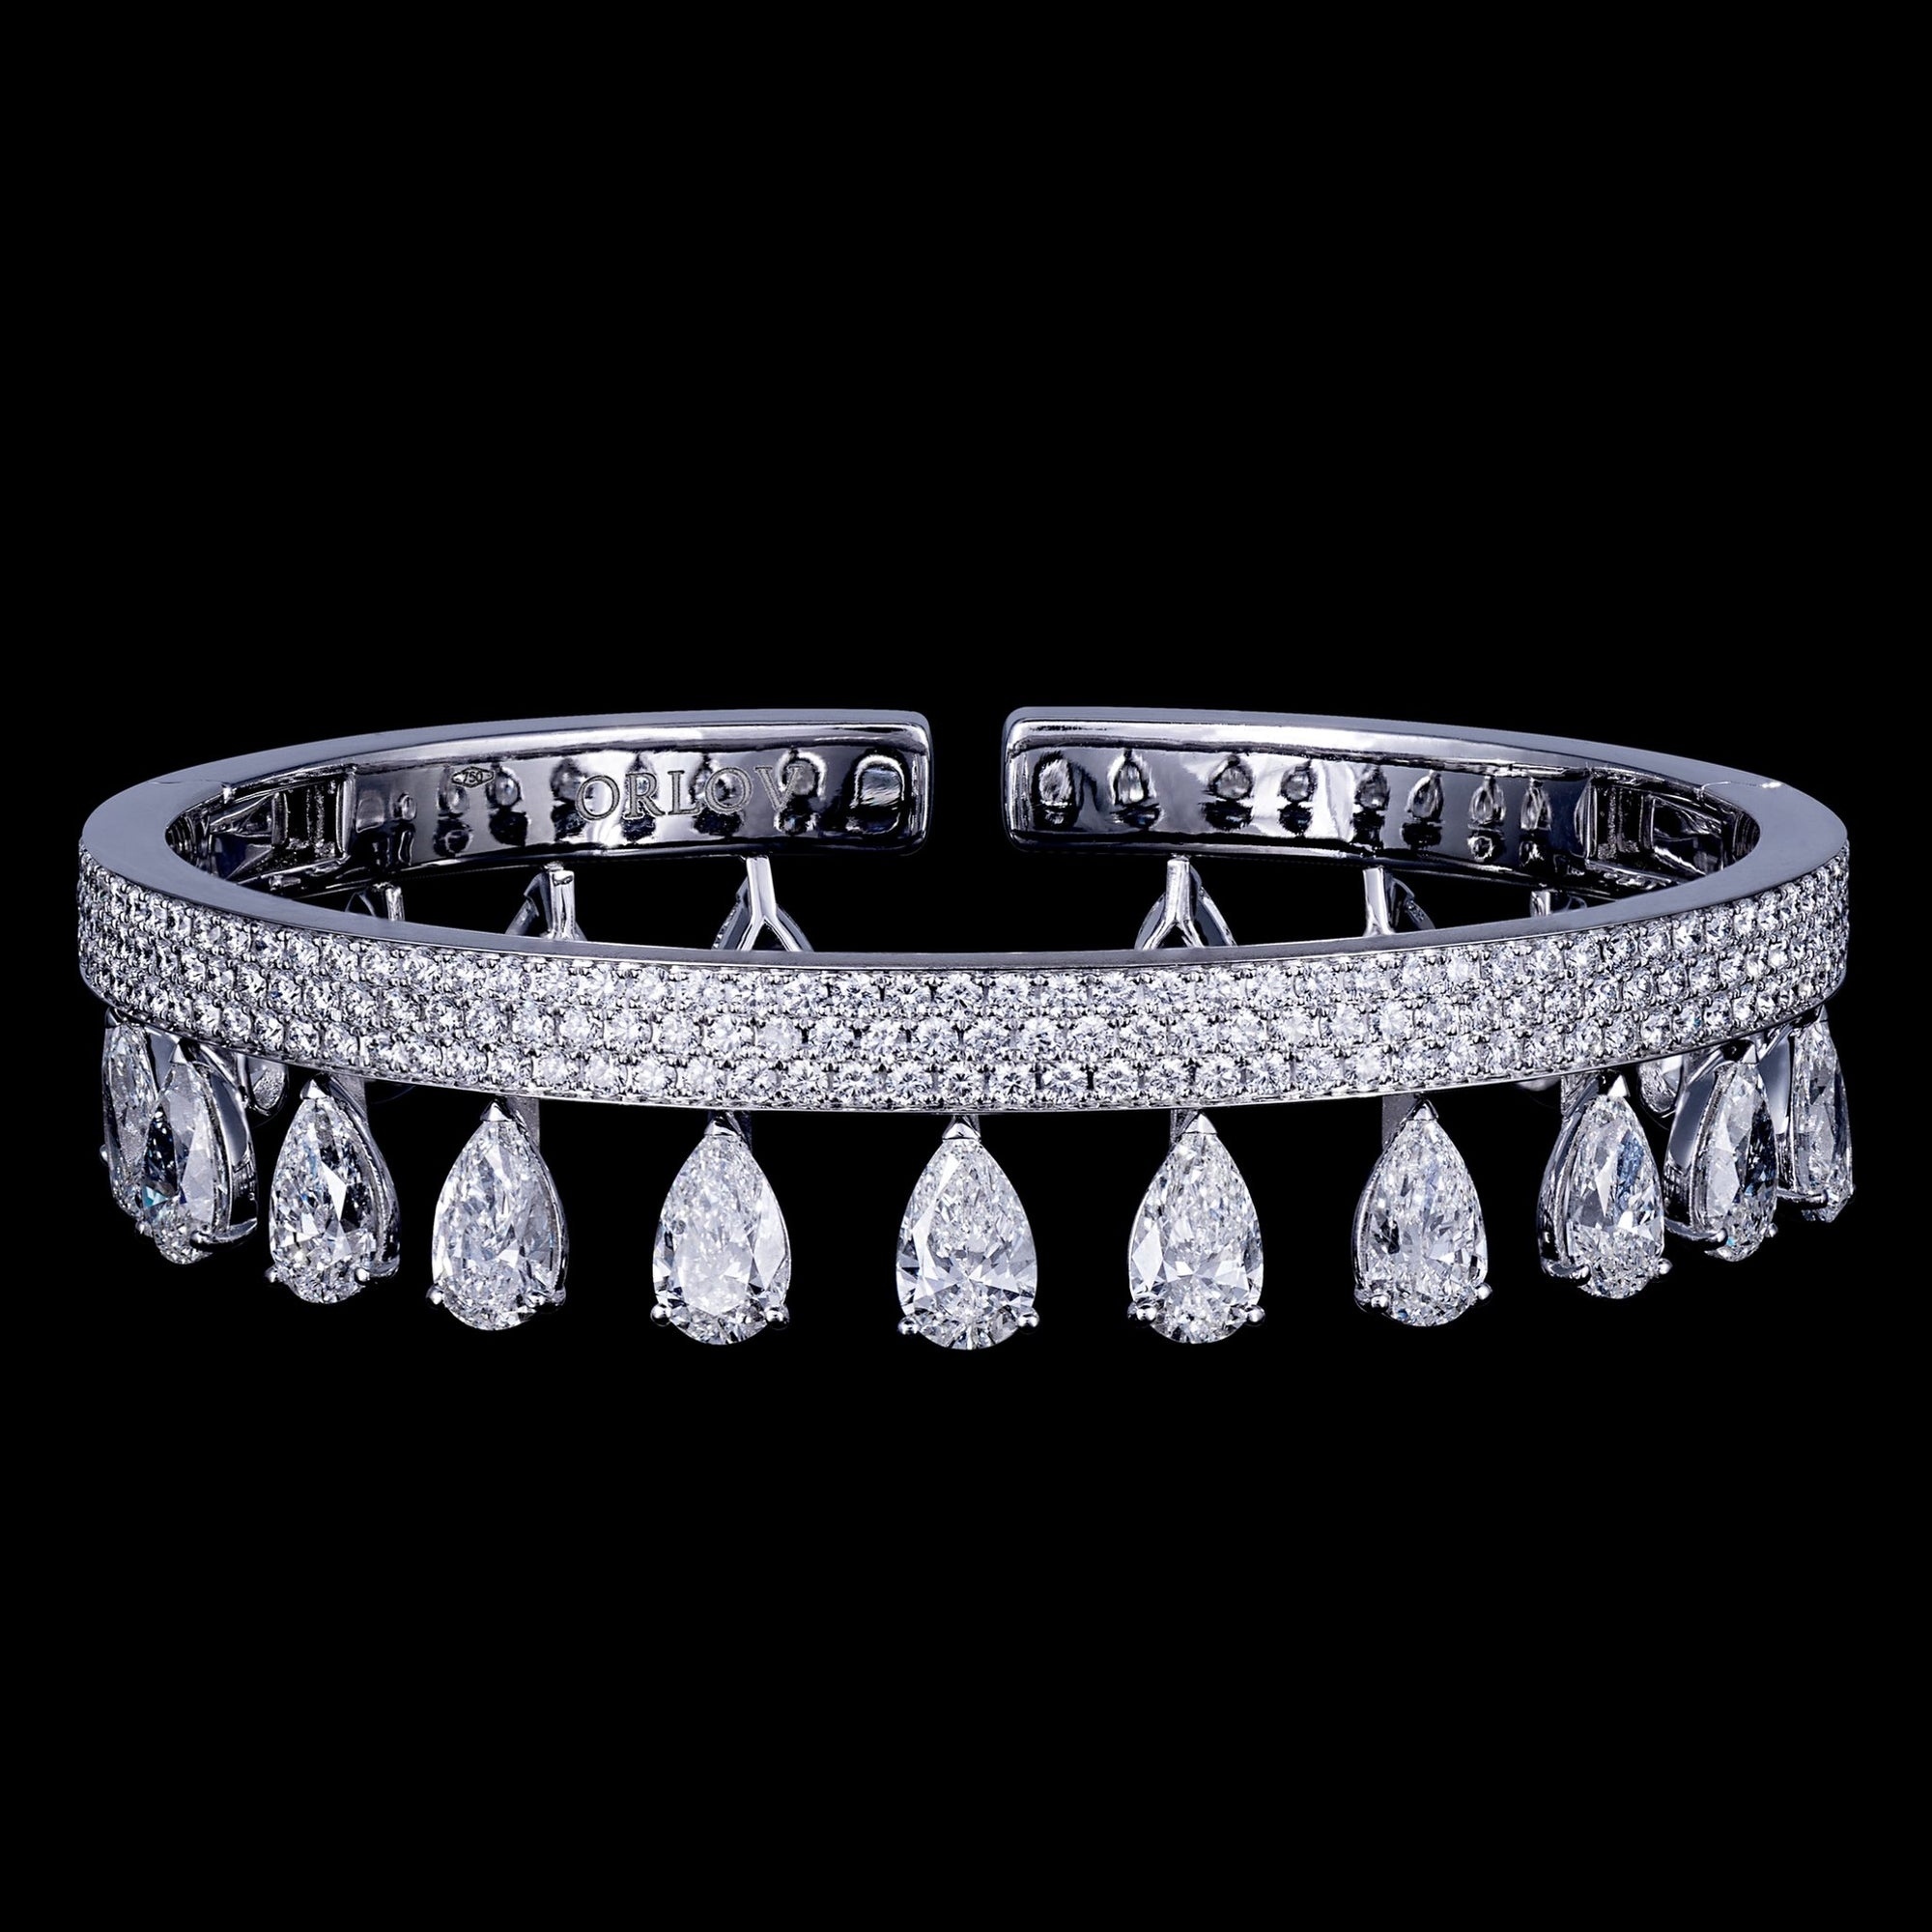 ORLOV SIMPLICITY bracelet set with diamonds